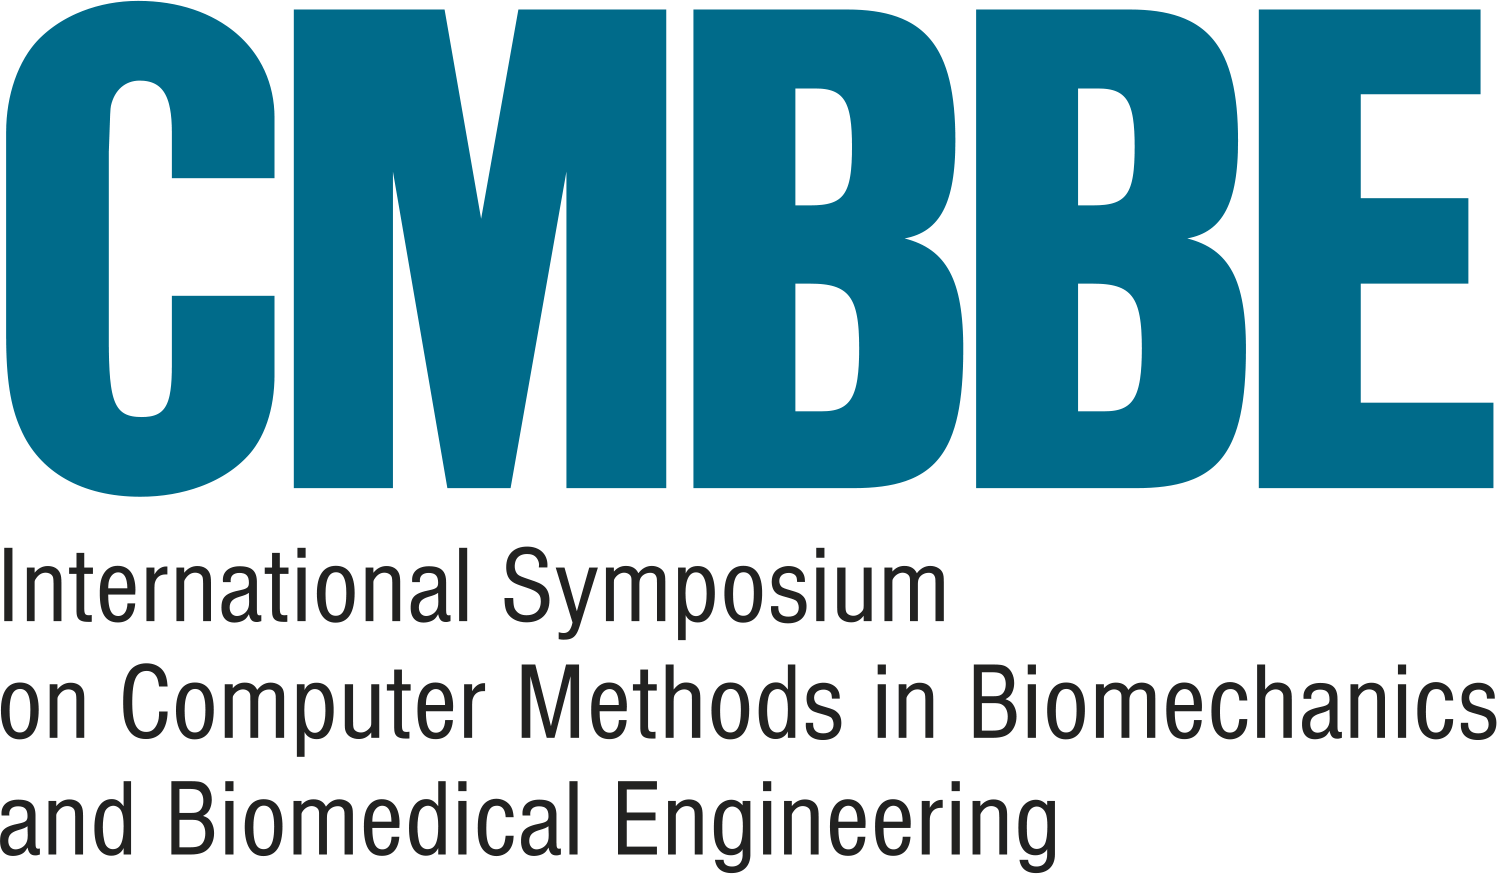 CMBBE Symposium